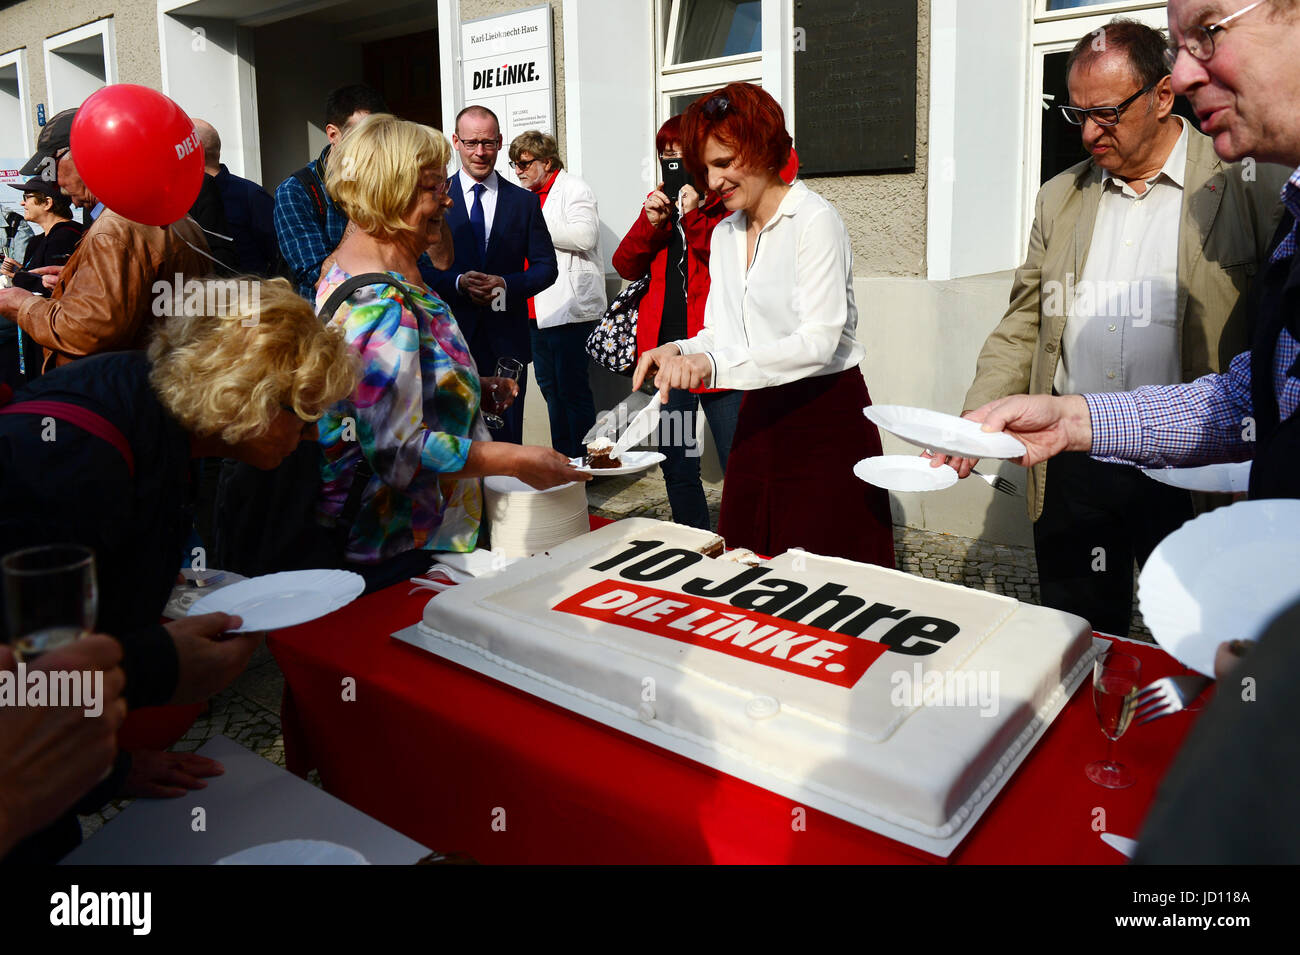 Berlin, Germany. 16th June, 2017. Chairwoman Katja Kipping of the political party 'The Left' (Die Linke) - Stock Image